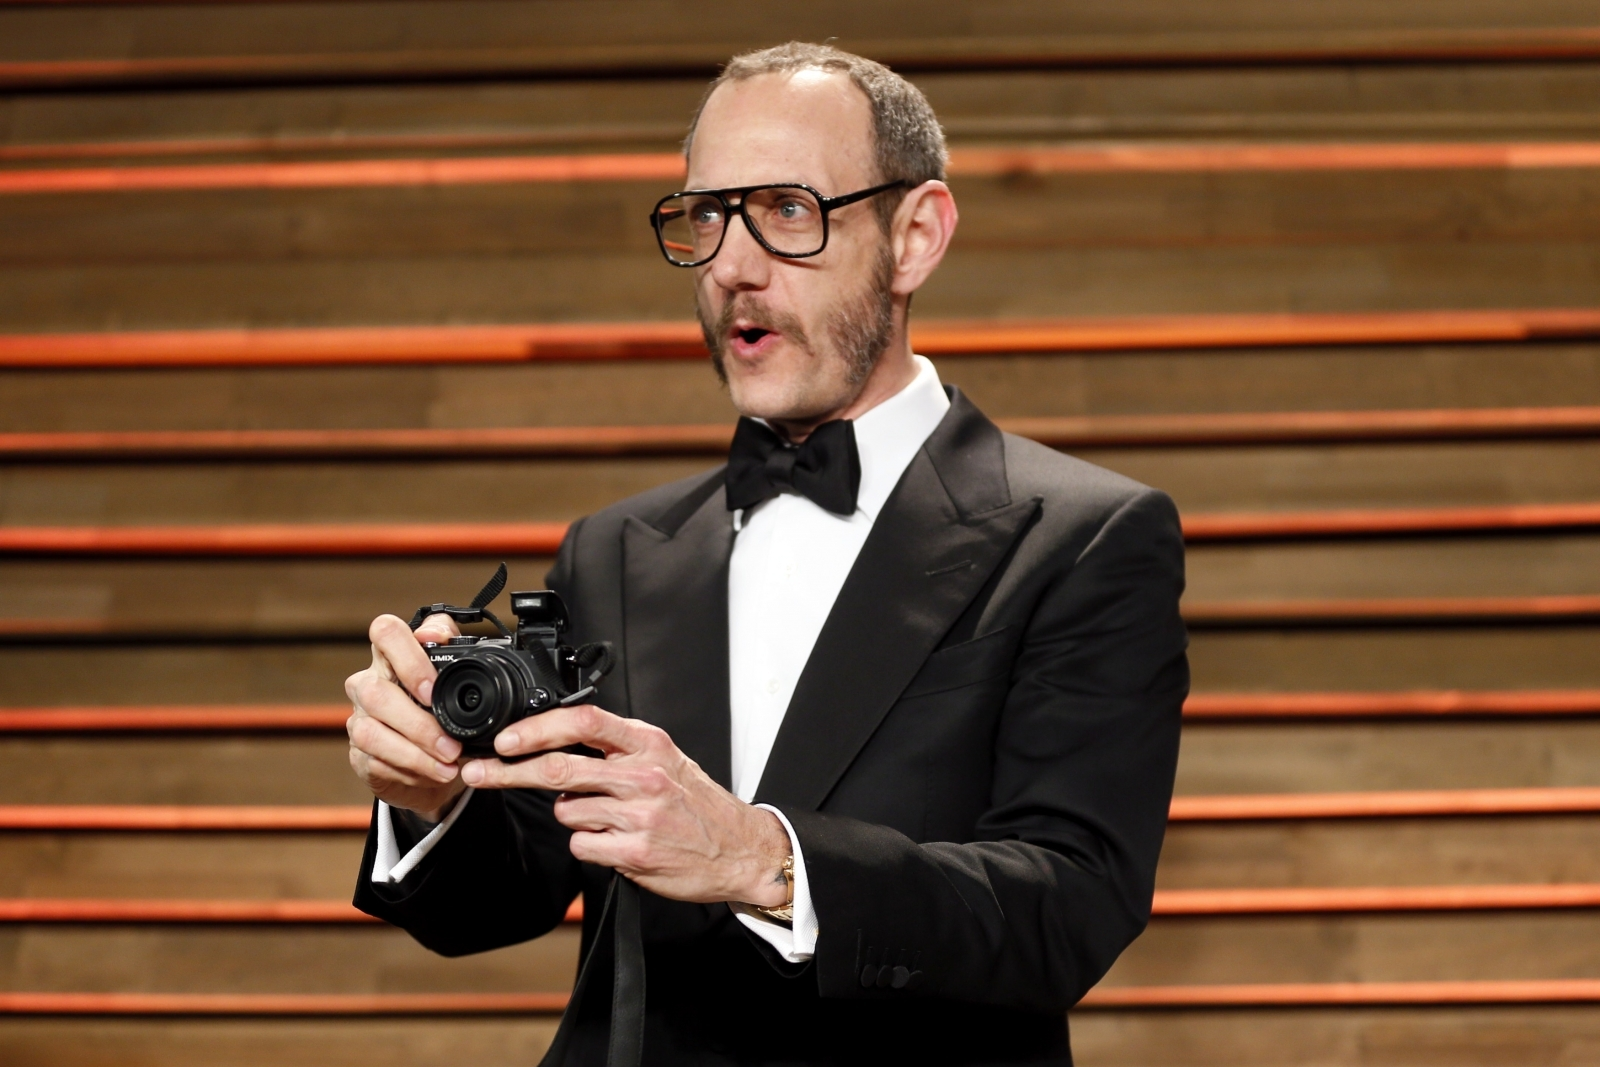 Timing of Condé Nast's Terry Richardson ban raises eyebrows